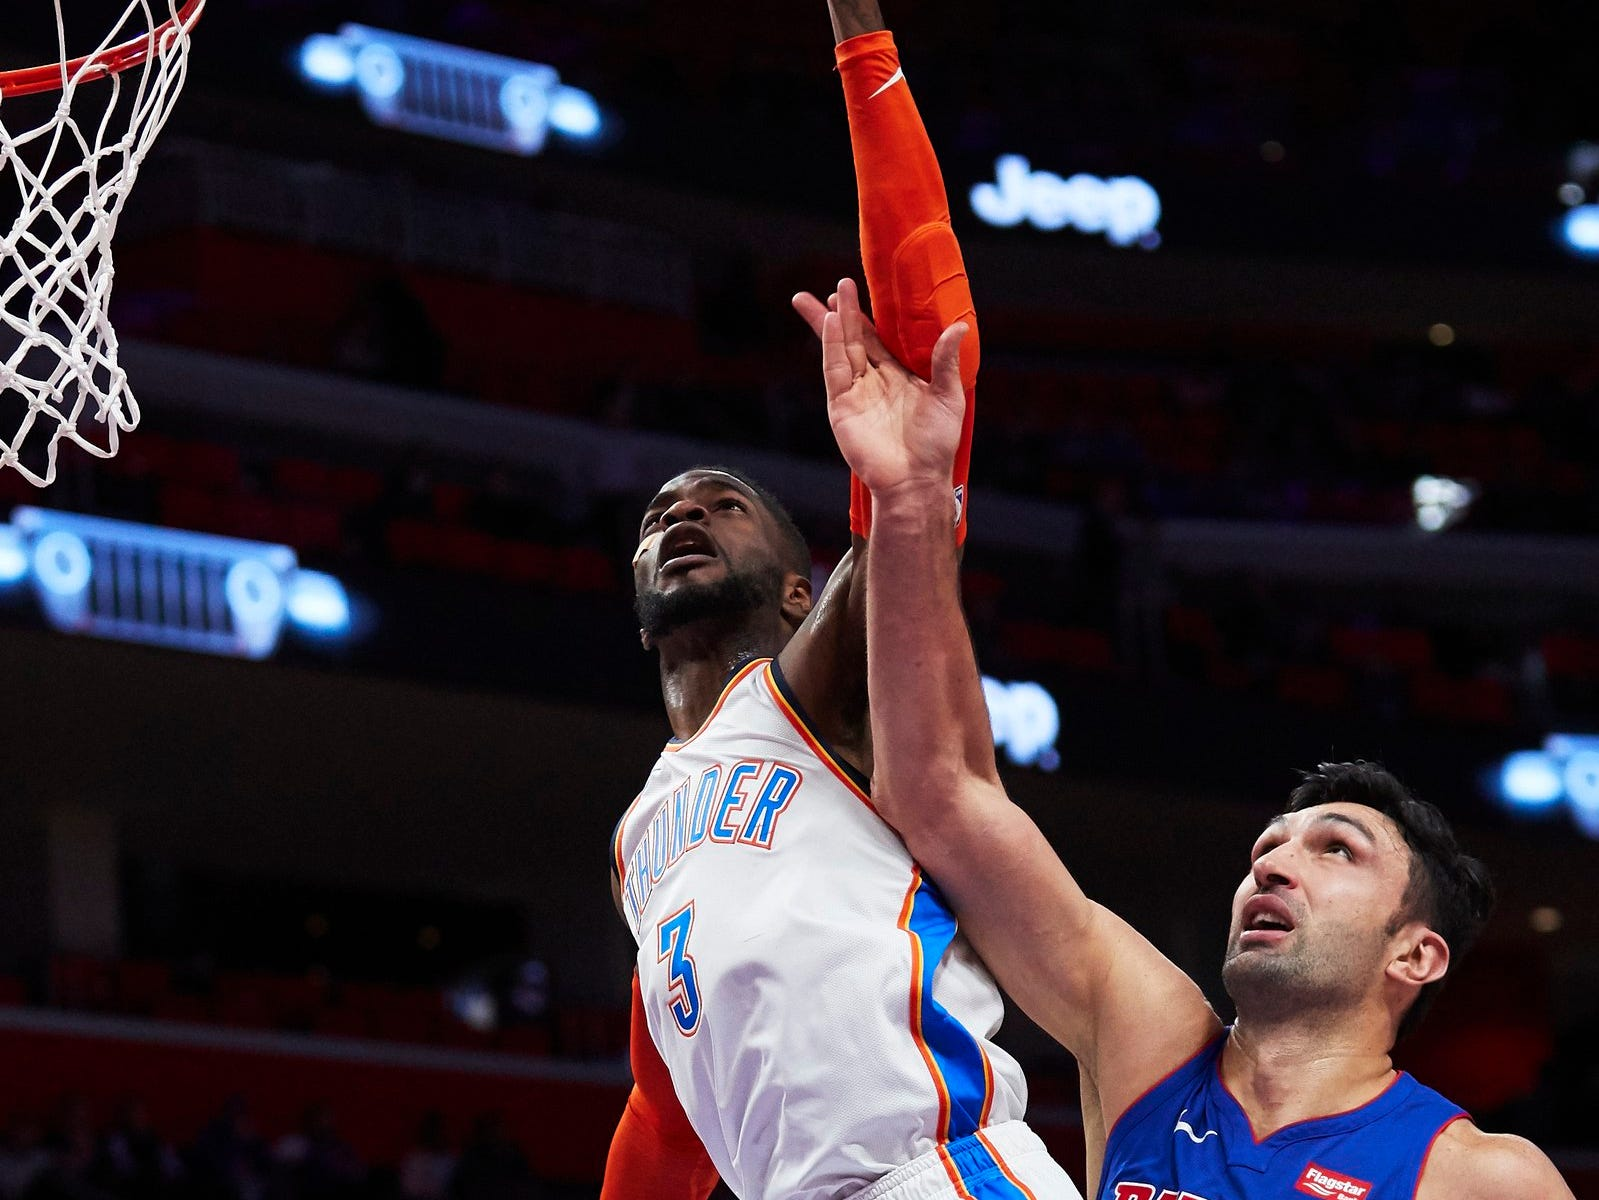 Oklahoma City Thunder forward Nerlens Noel (3) shoots defended by Detroit Pistons center Zaza Pachulia (27) in the first half at Little Caesars Arena.